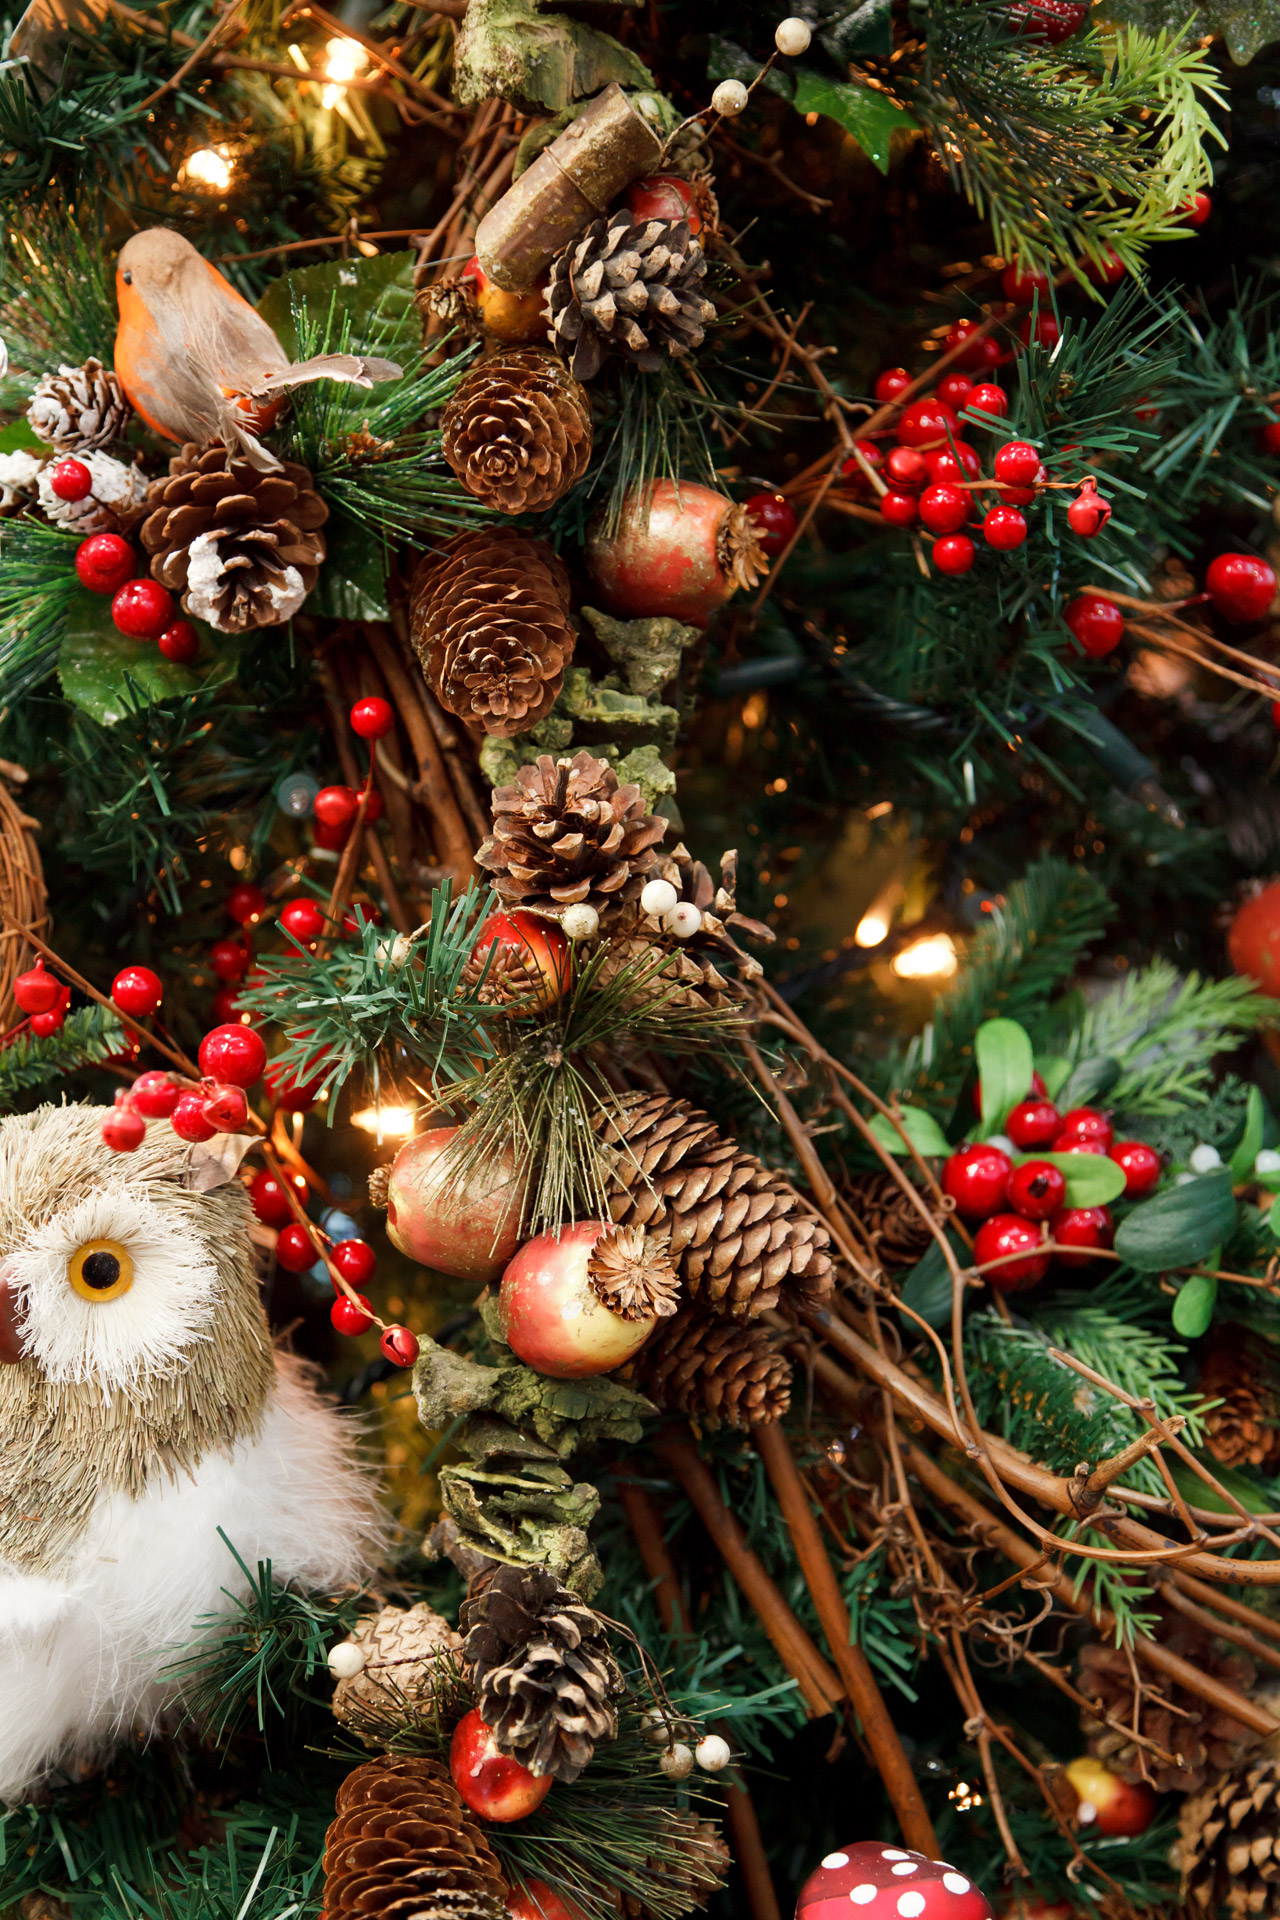 Shutterstock Hd Wallpapers Christmas Tree Close Up Free Stock Photo Public Domain